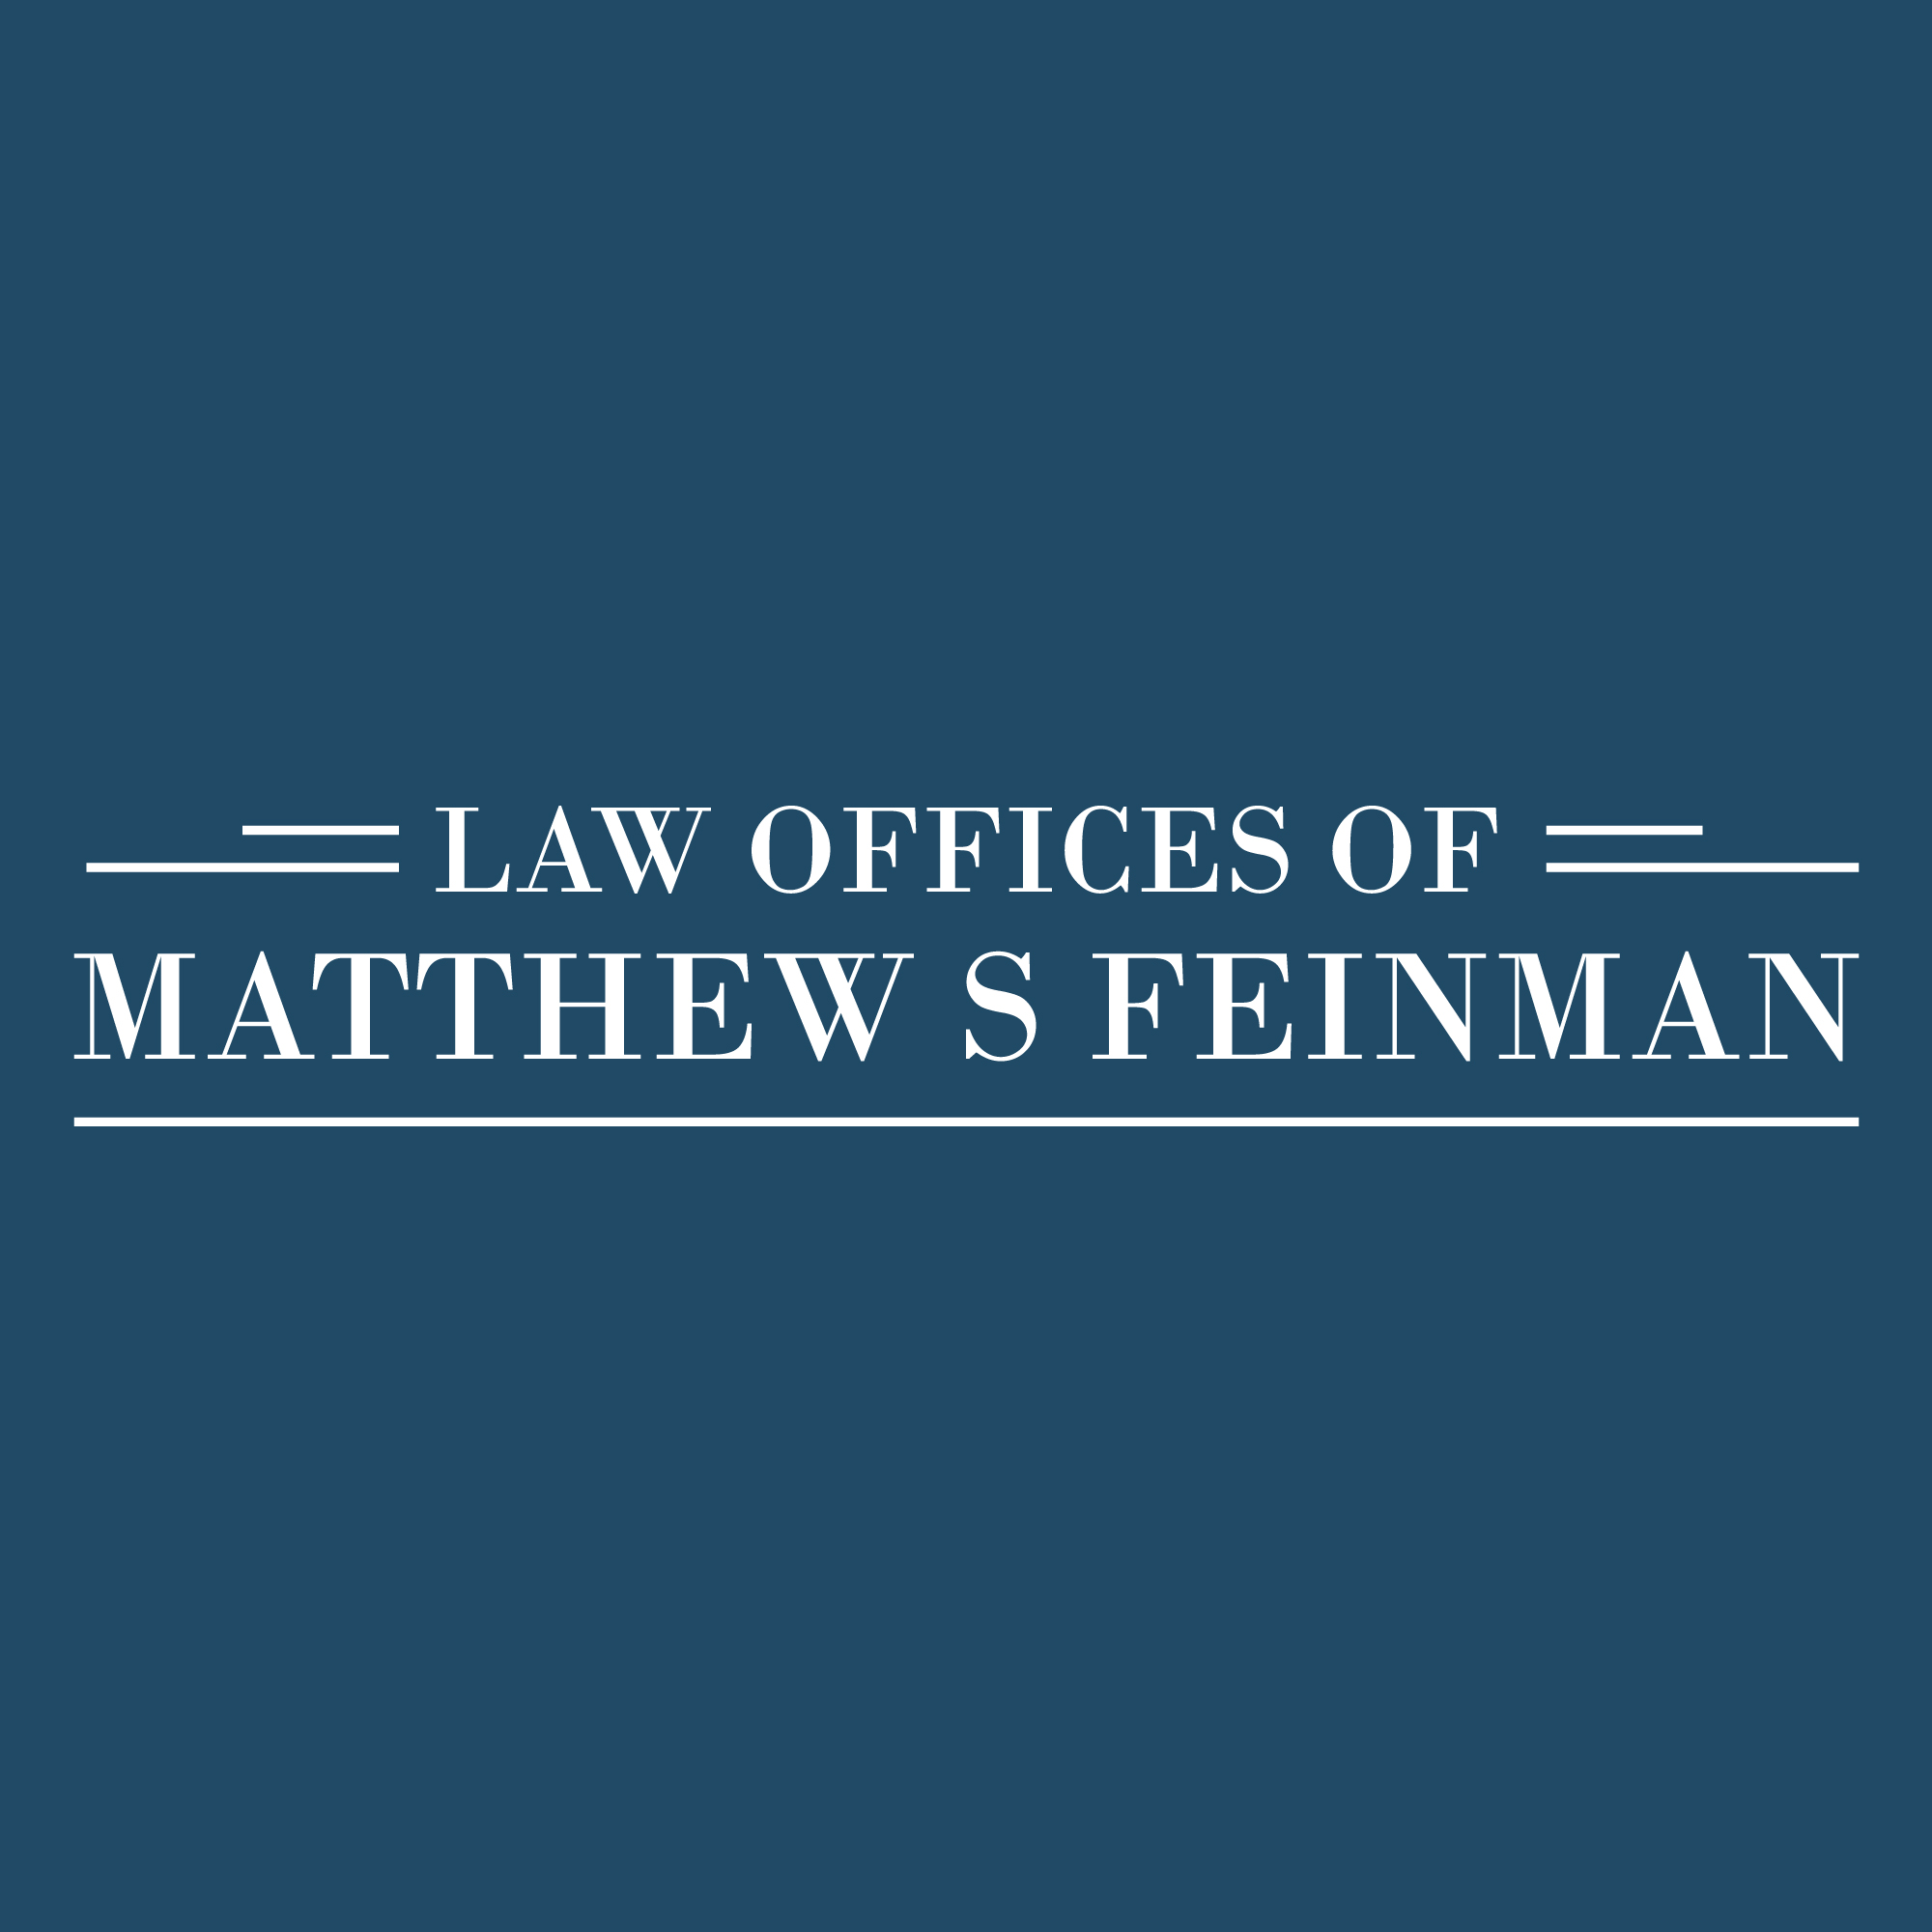 Law Offices of Matthew S Feinman